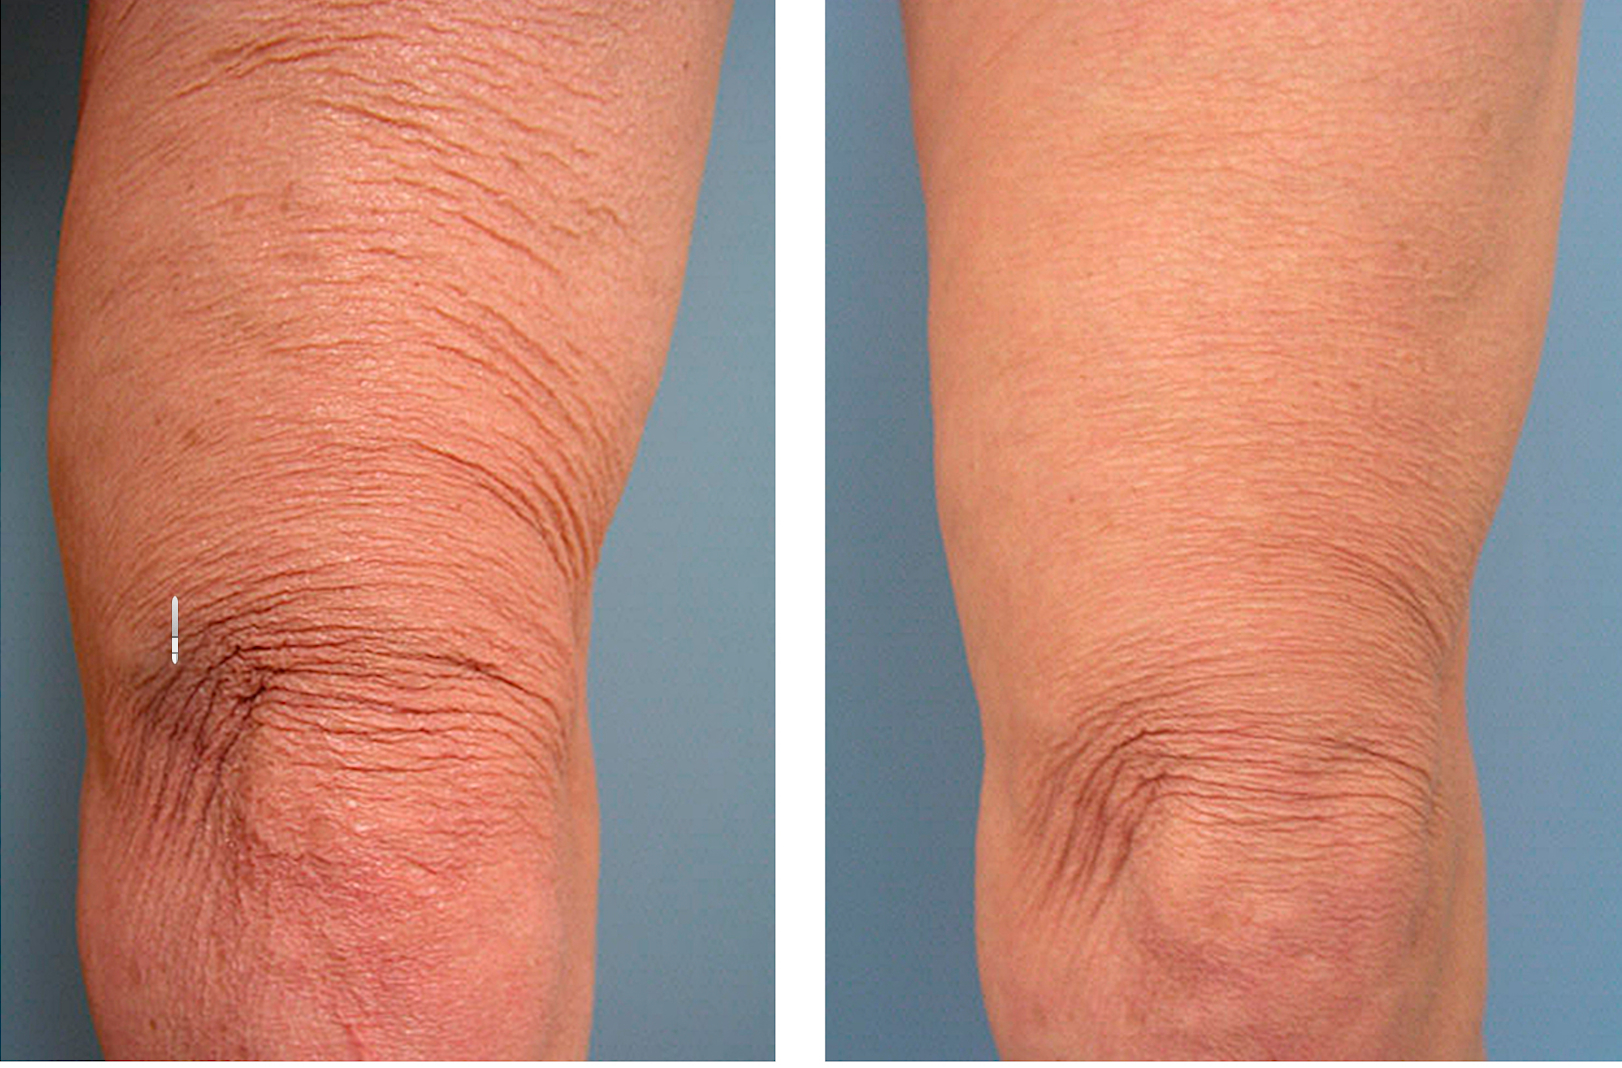 Thermage For Loose Skin And Body Shaping And Exilis Non